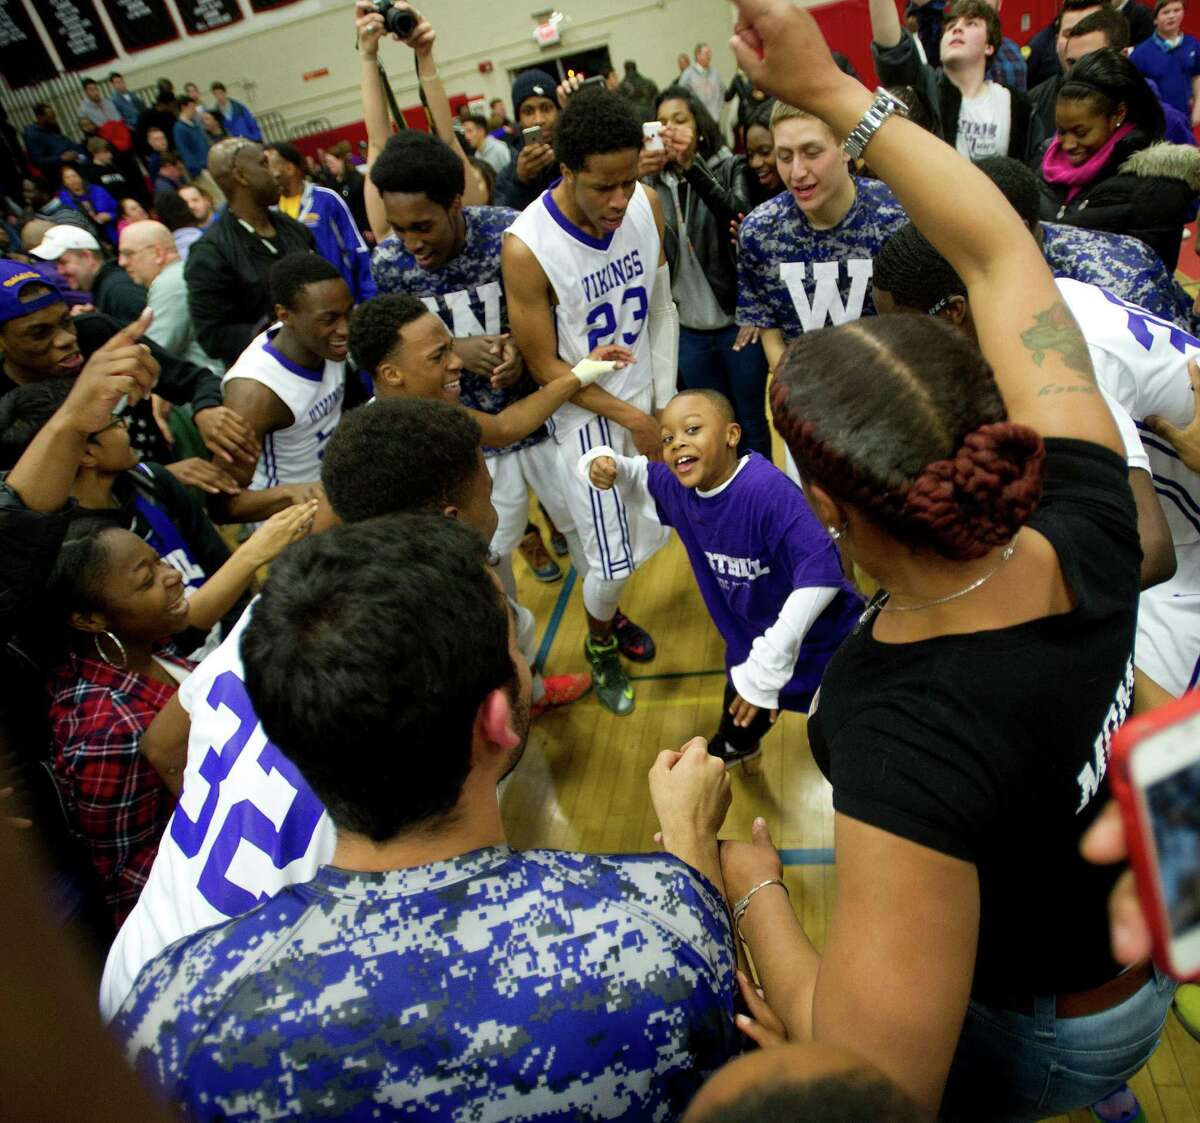 Westhill players surround Raheem Hargrove-Murray, 7, as they dance to celebrate winning Friday's FCIAC Boys Basketball Championship game between Westhill and Norwalk High Schools at Fairfield Warde High School in Fairfield, Conn., on Friday, March 6, 2015.